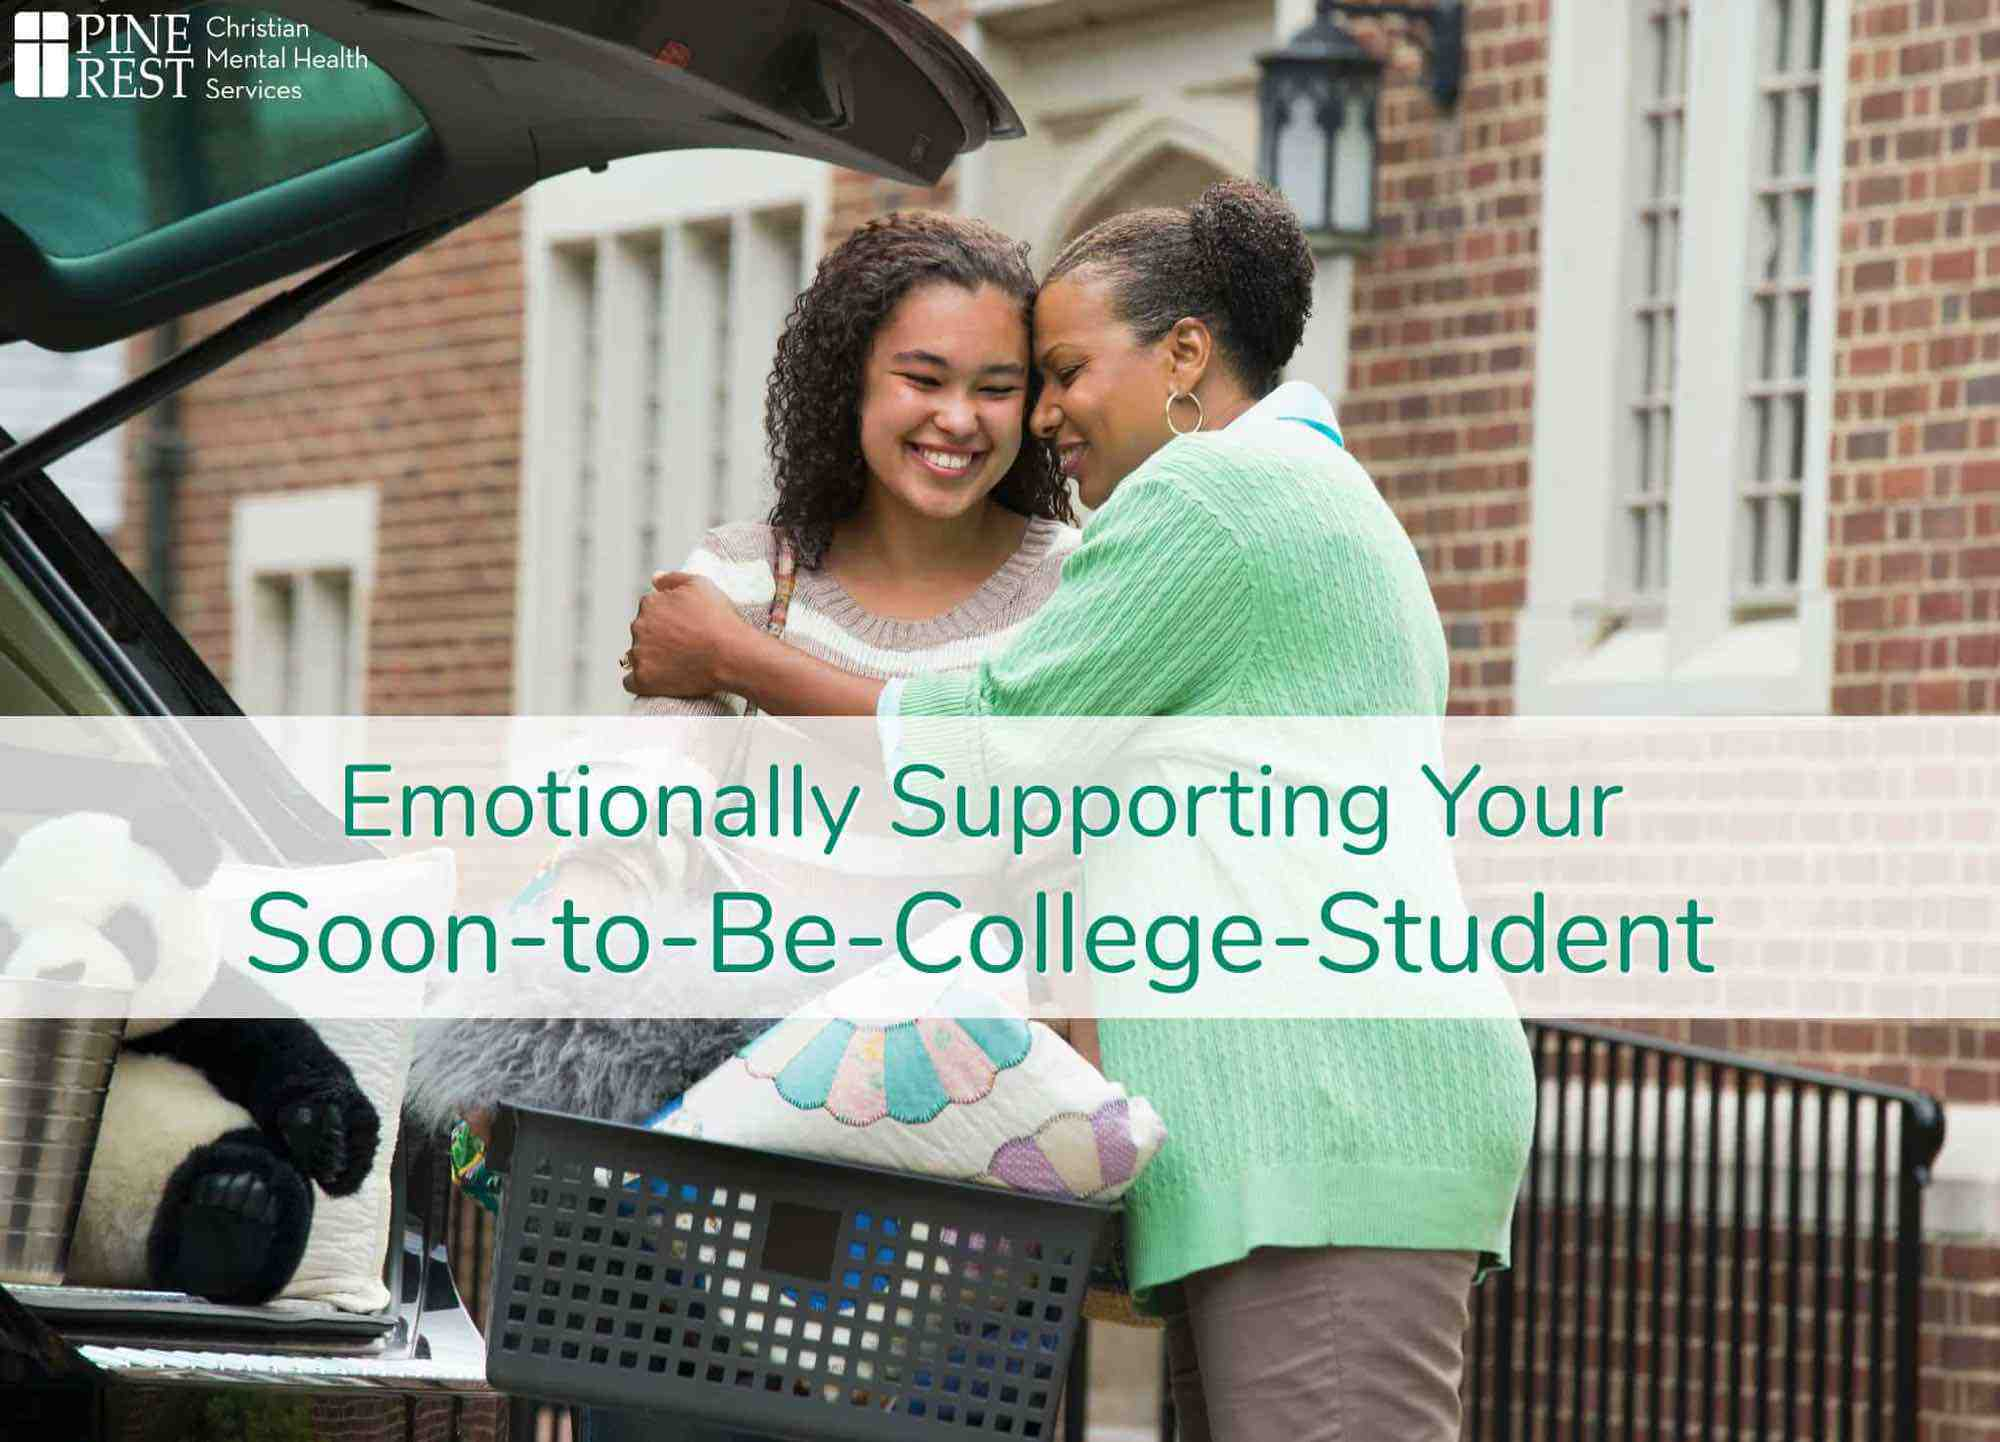 Mom hugging daughter at college drop off